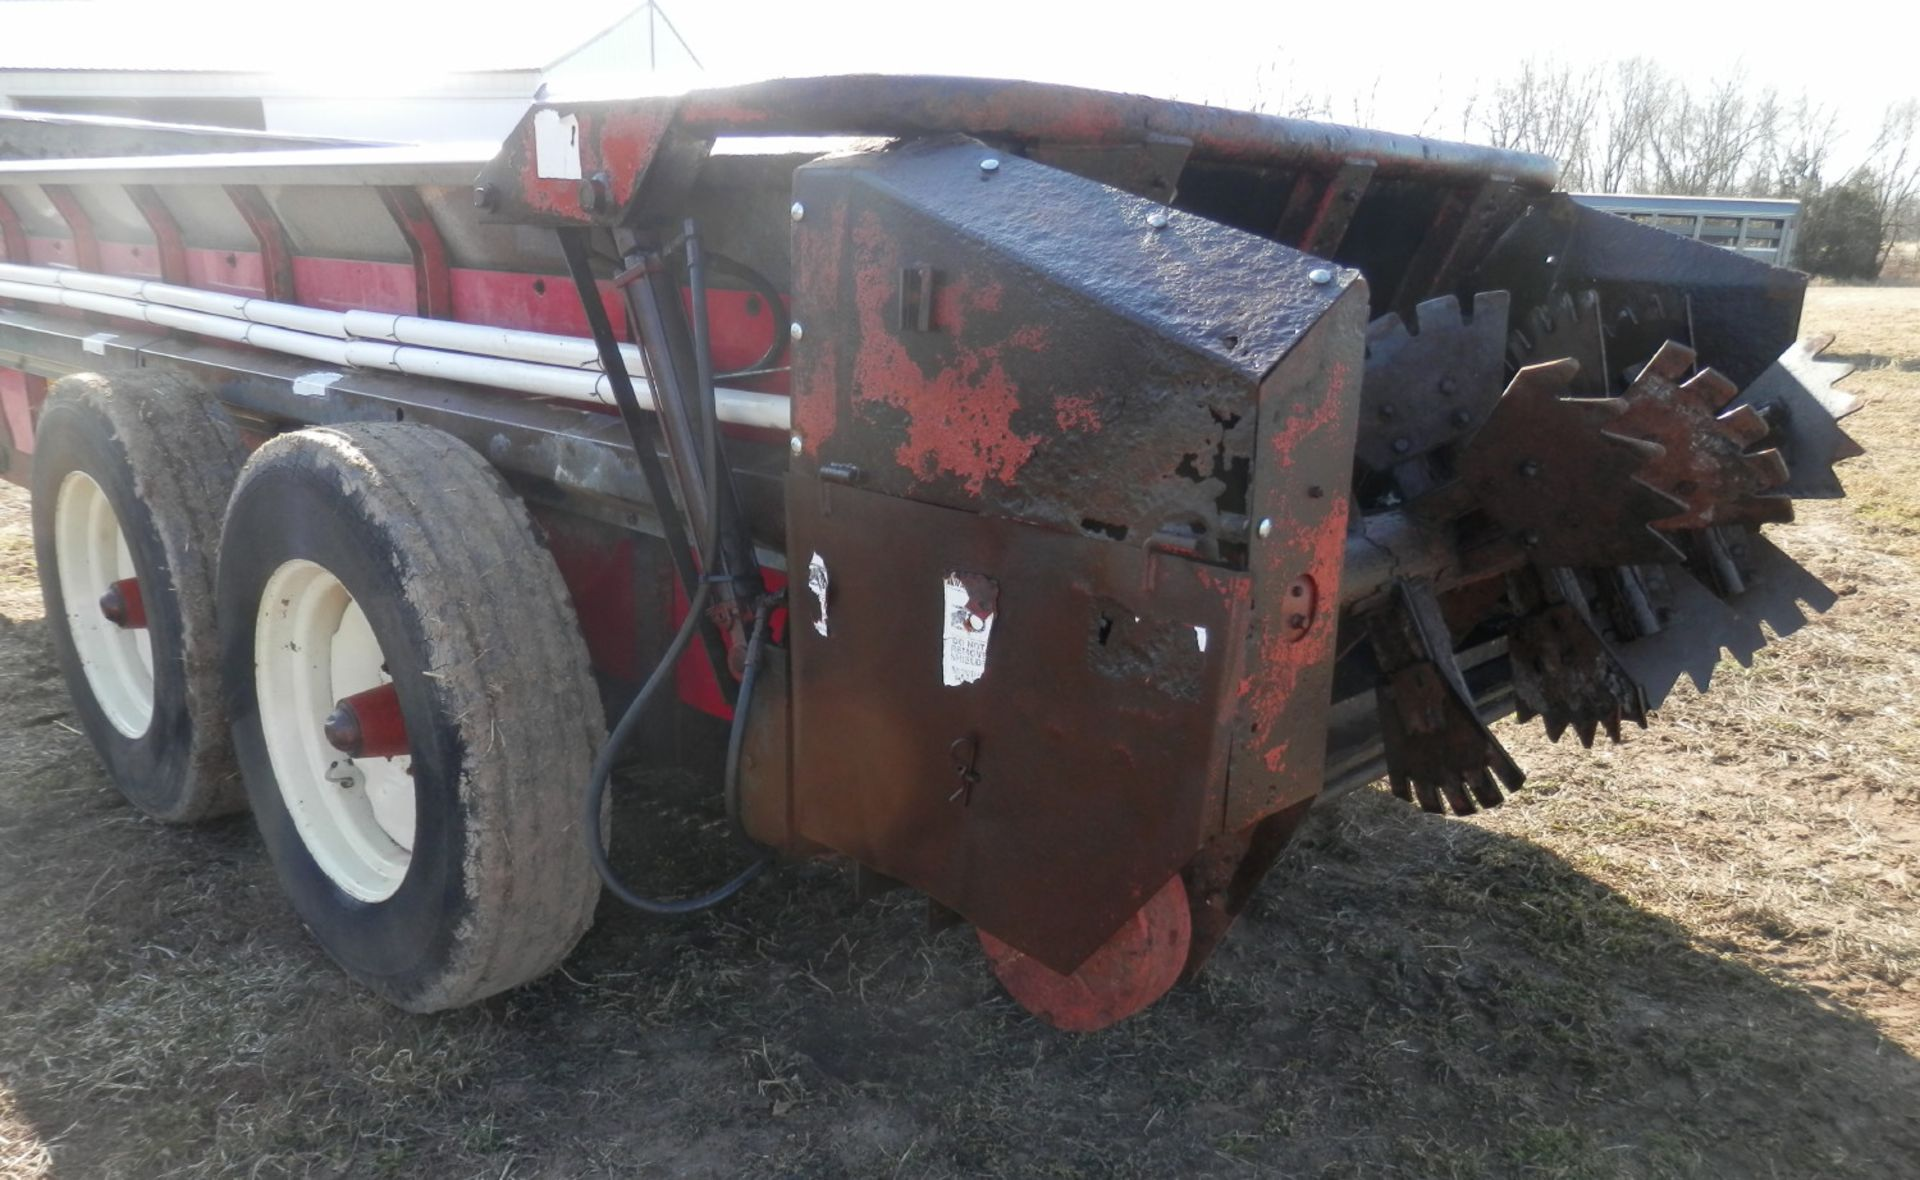 H&S 370 TANDEM AXLE MANURE SPREADER - Image 7 of 8